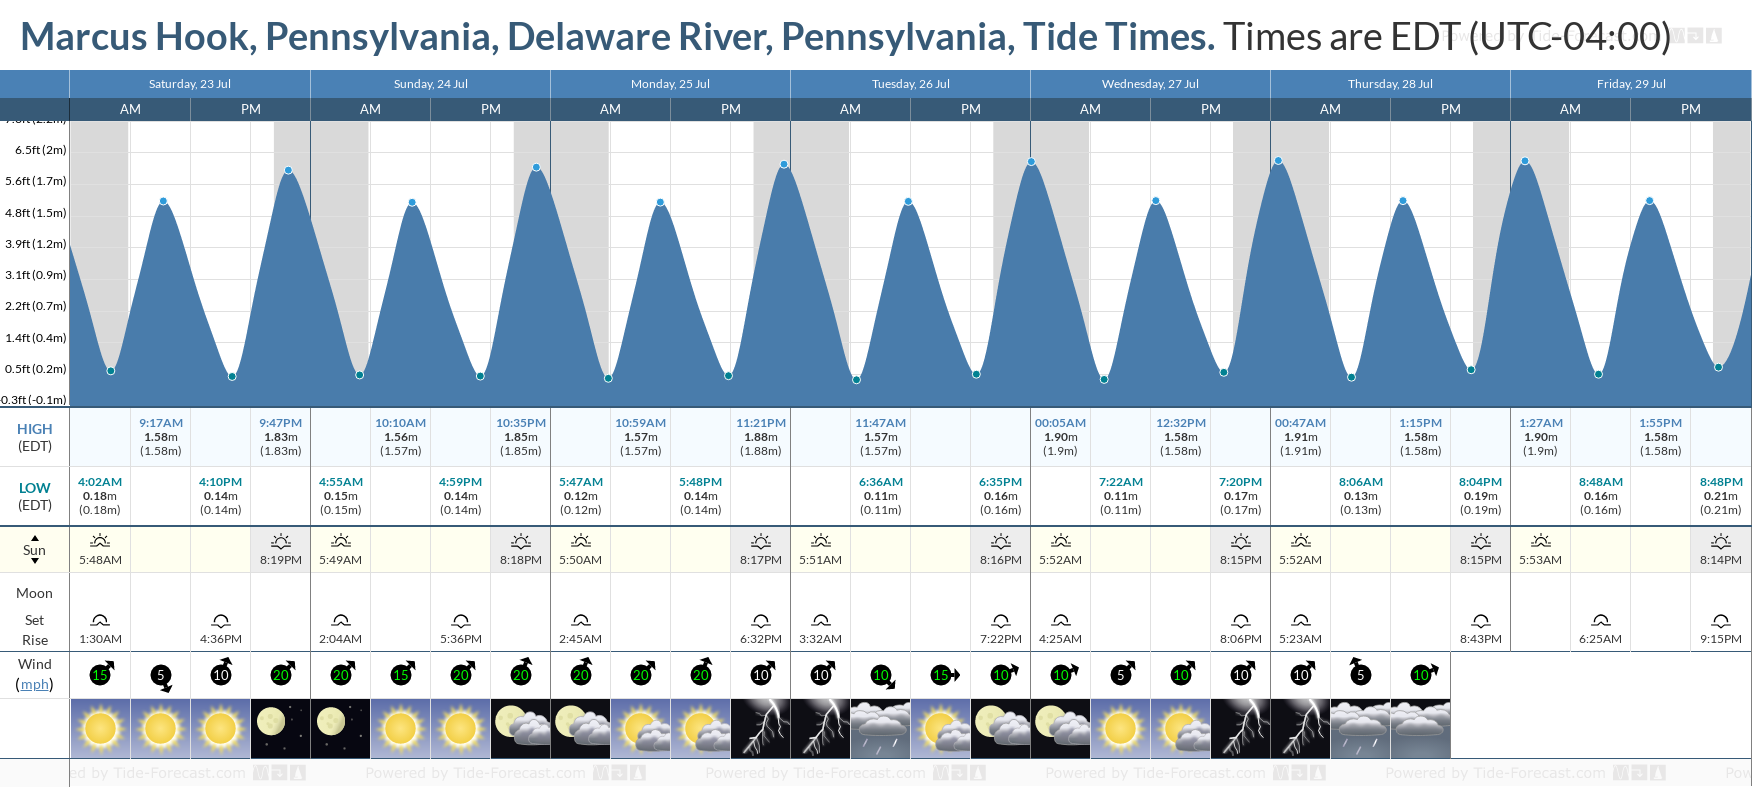 Marcus Hook, Pennsylvania, Delaware River, Pennsylvania Tide Chart including high and low tide tide times for the next 7 days